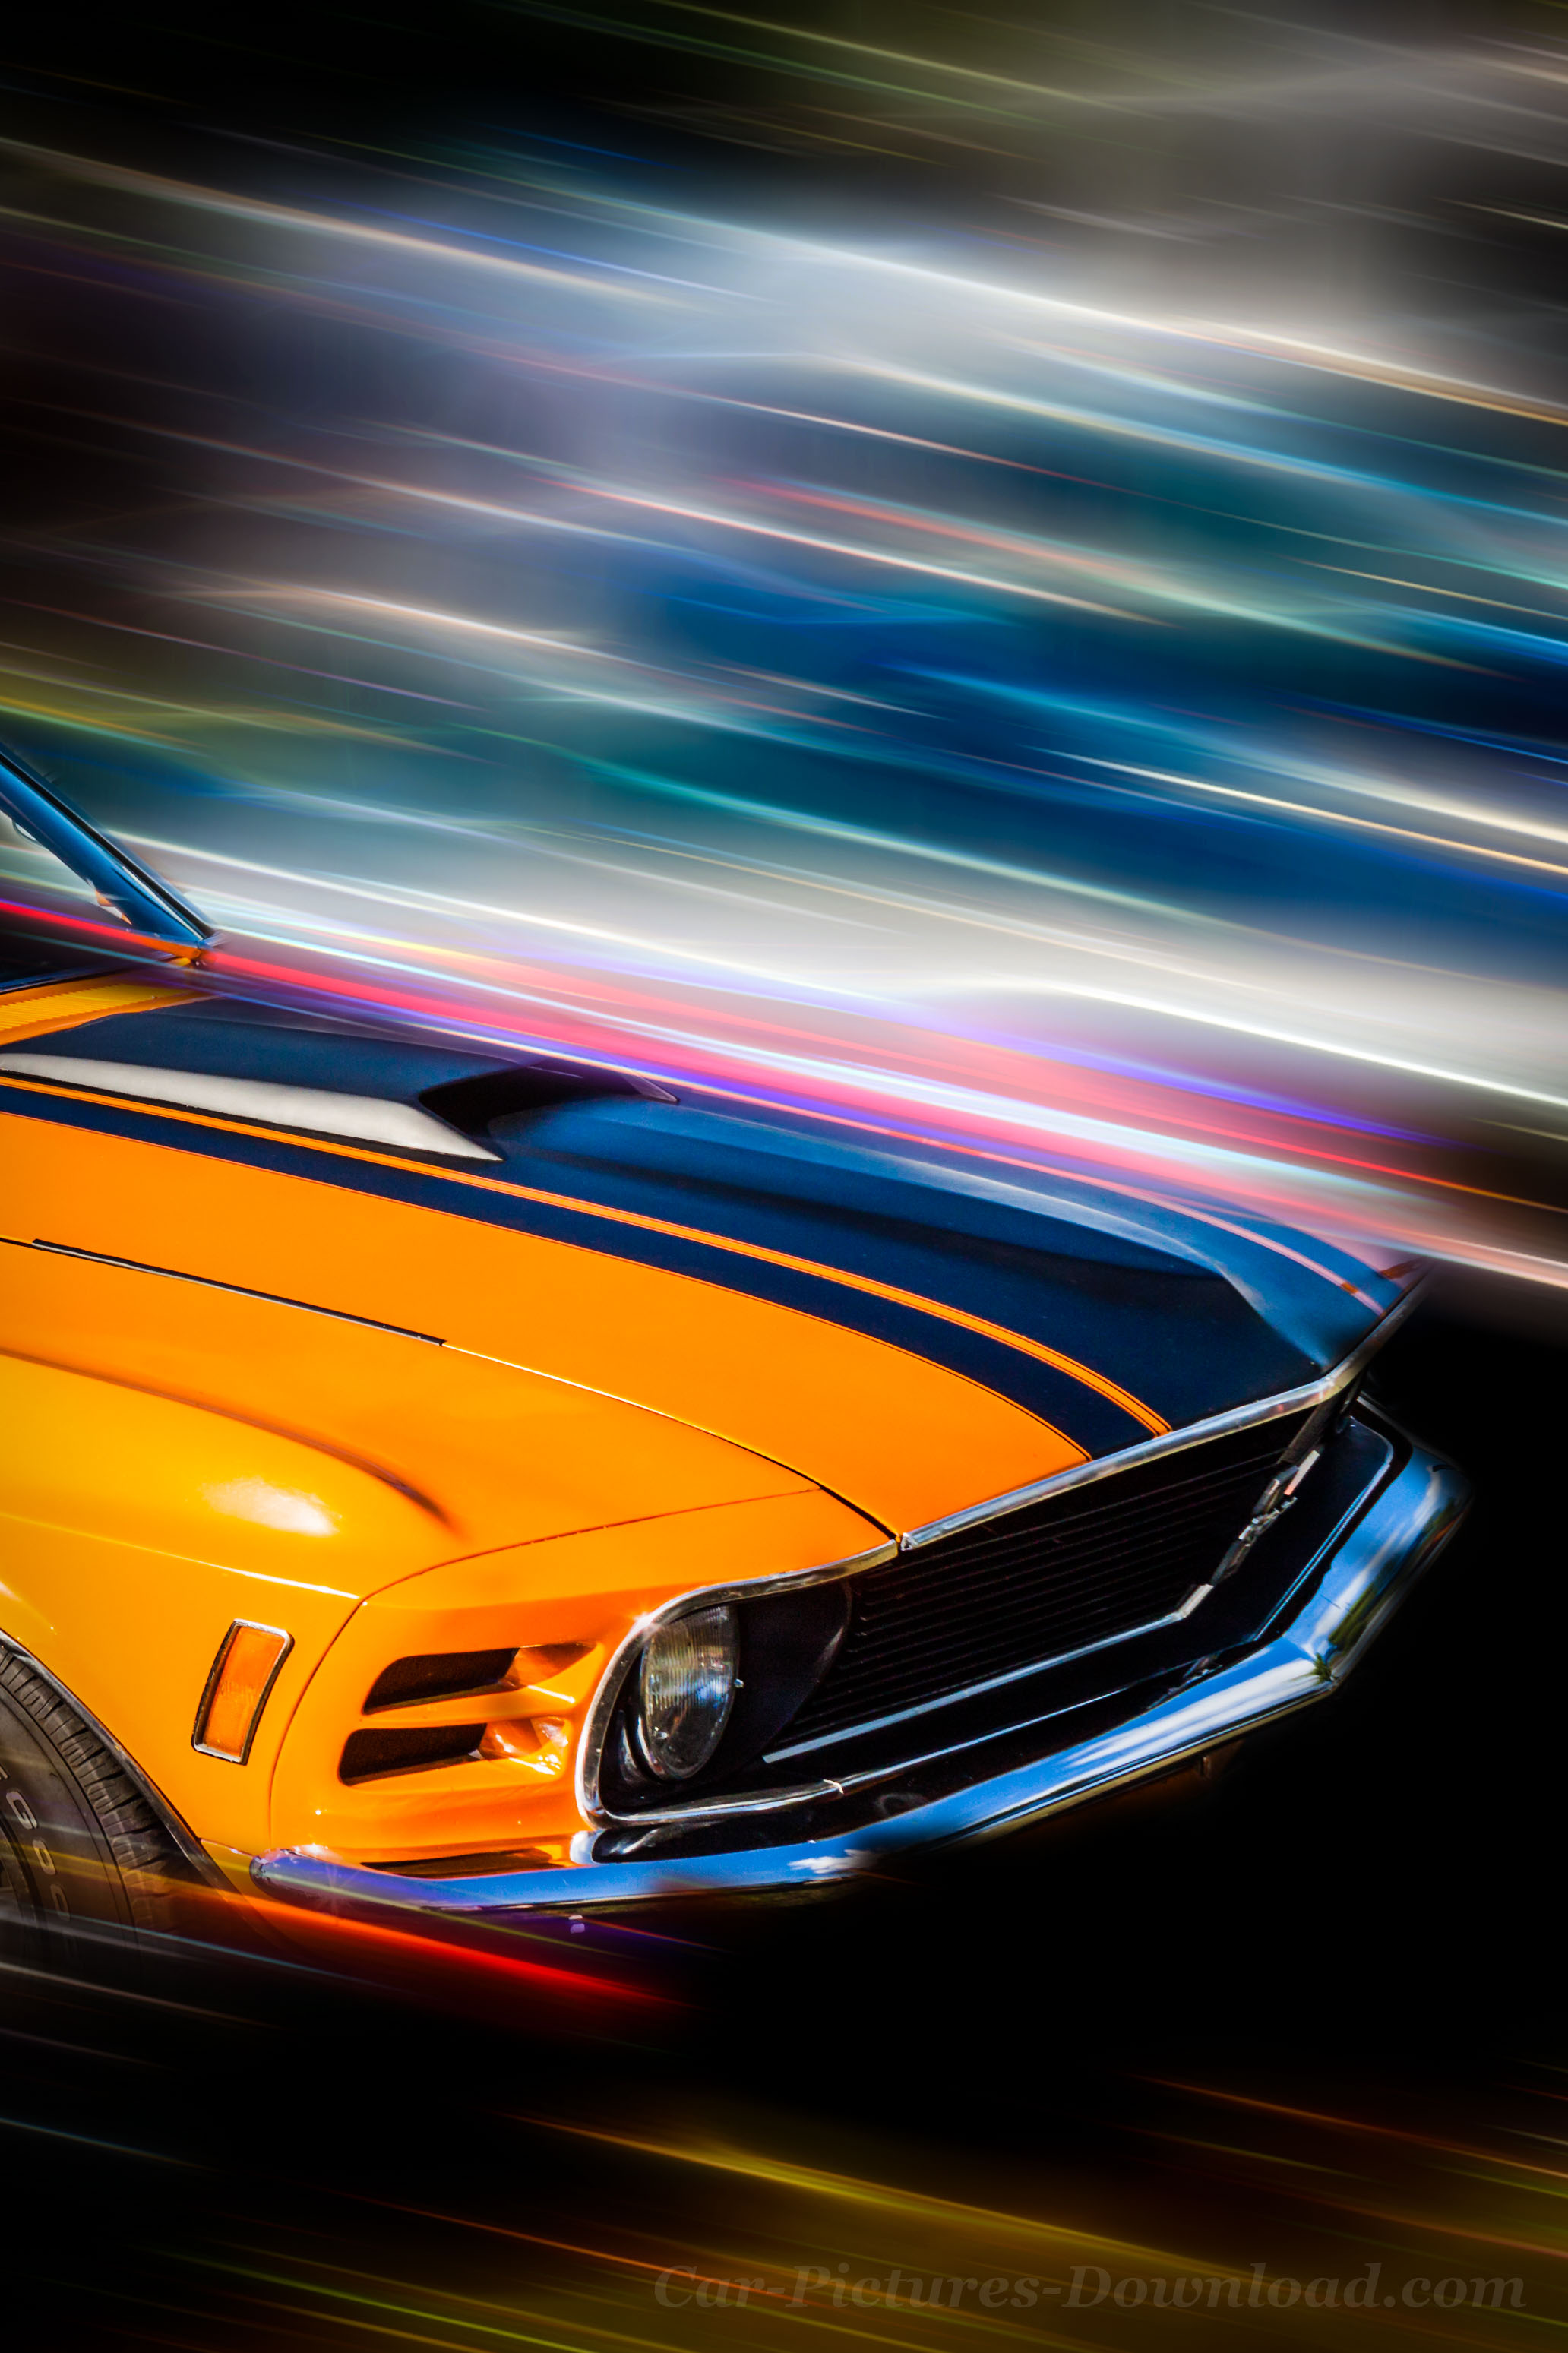 Mustang Wallpaper Pictures For Pc Mobile Devices Download Free